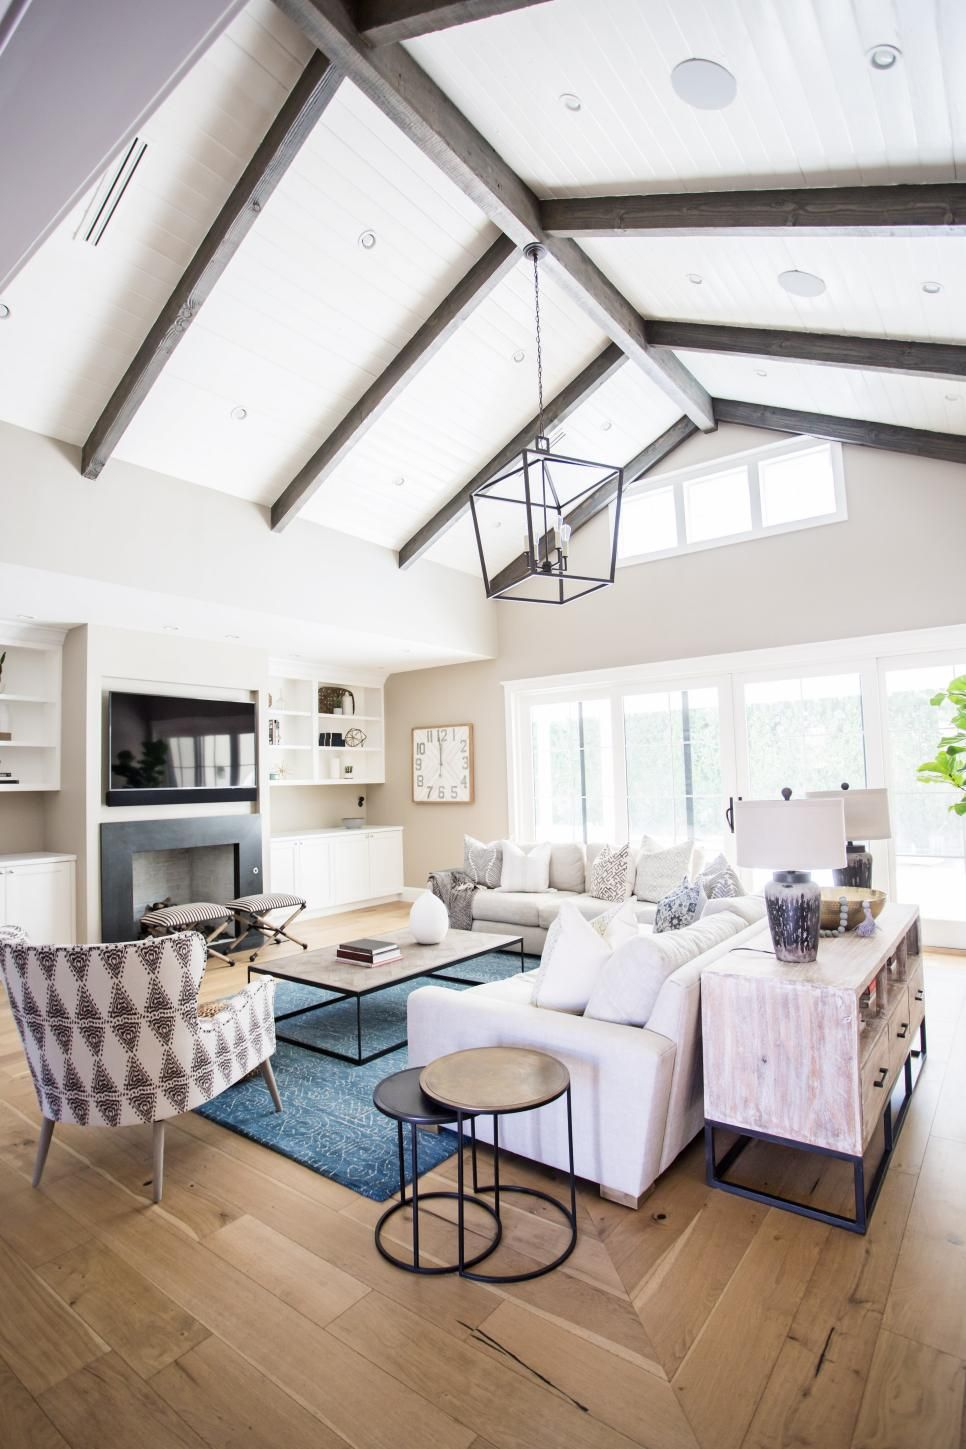 Transitional Living Room Boasts Vaulted Ceilings With Wood Beams Vaulted Ceiling Living Room Ceiling Beams Living Room Beams Living Room